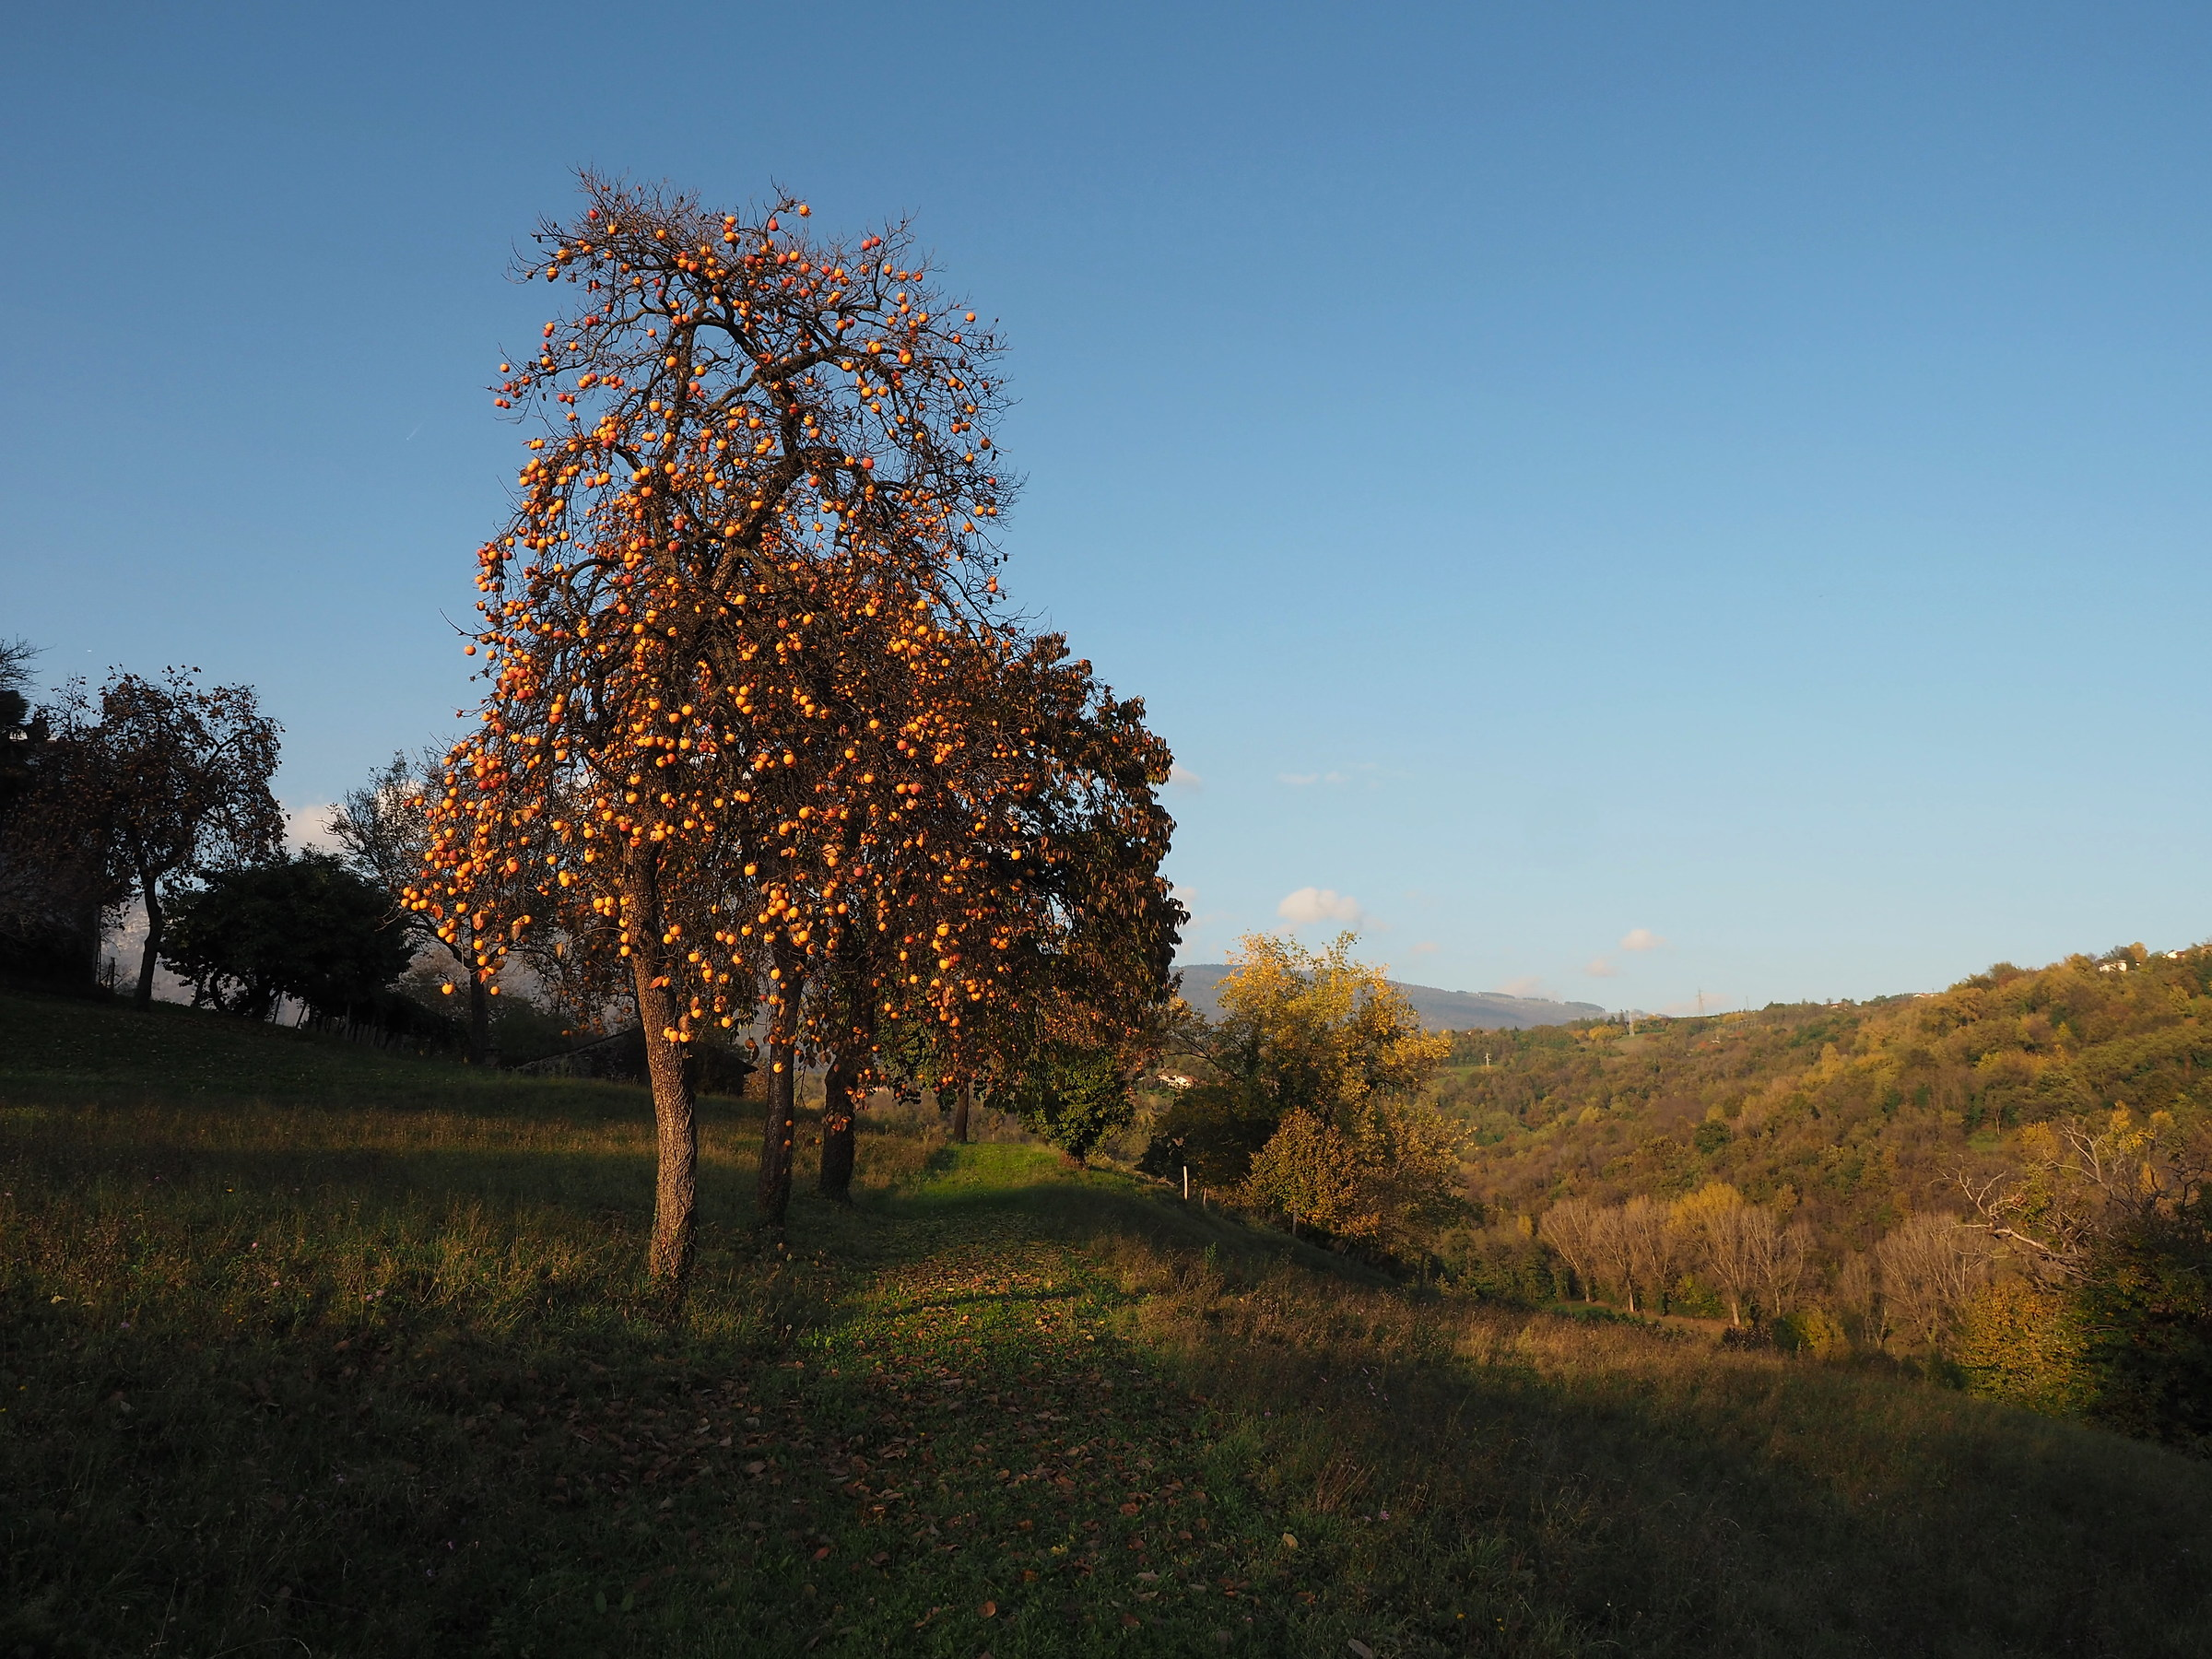 Autumn in the hills...